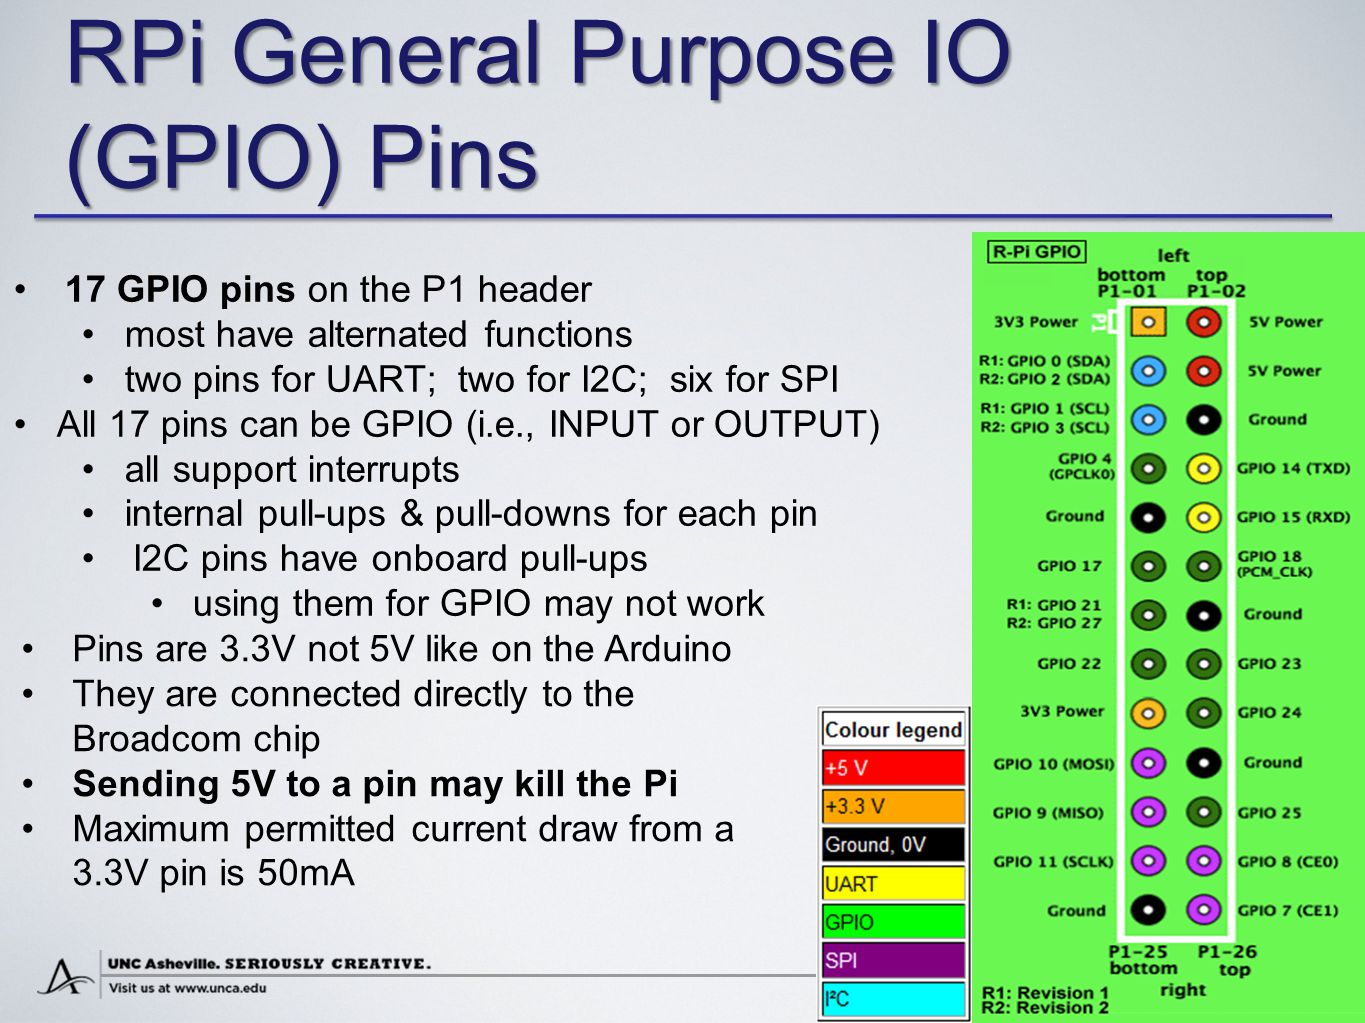 Dean Brock, Rebecca Bruce, and Marietta Cameron COMPUTER SCIENCE RPi General Purpose IO (GPIO) Pins 17 GPIO pins on the P1 header most have alternated functions two pins for UART; two for I2C; six for SPI All 17 pins can be GPIO (i.e., INPUT or OUTPUT) all support interrupts internal pull-ups & pull-downs for each pin I2C pins have onboard pull-ups using them for GPIO may not work Pins are 3.3V not 5V like on the Arduino They are connected directly to the Broadcom chip Sending 5V to a pin may kill the Pi Maximum permitted current draw from a 3.3V pin is 50mA